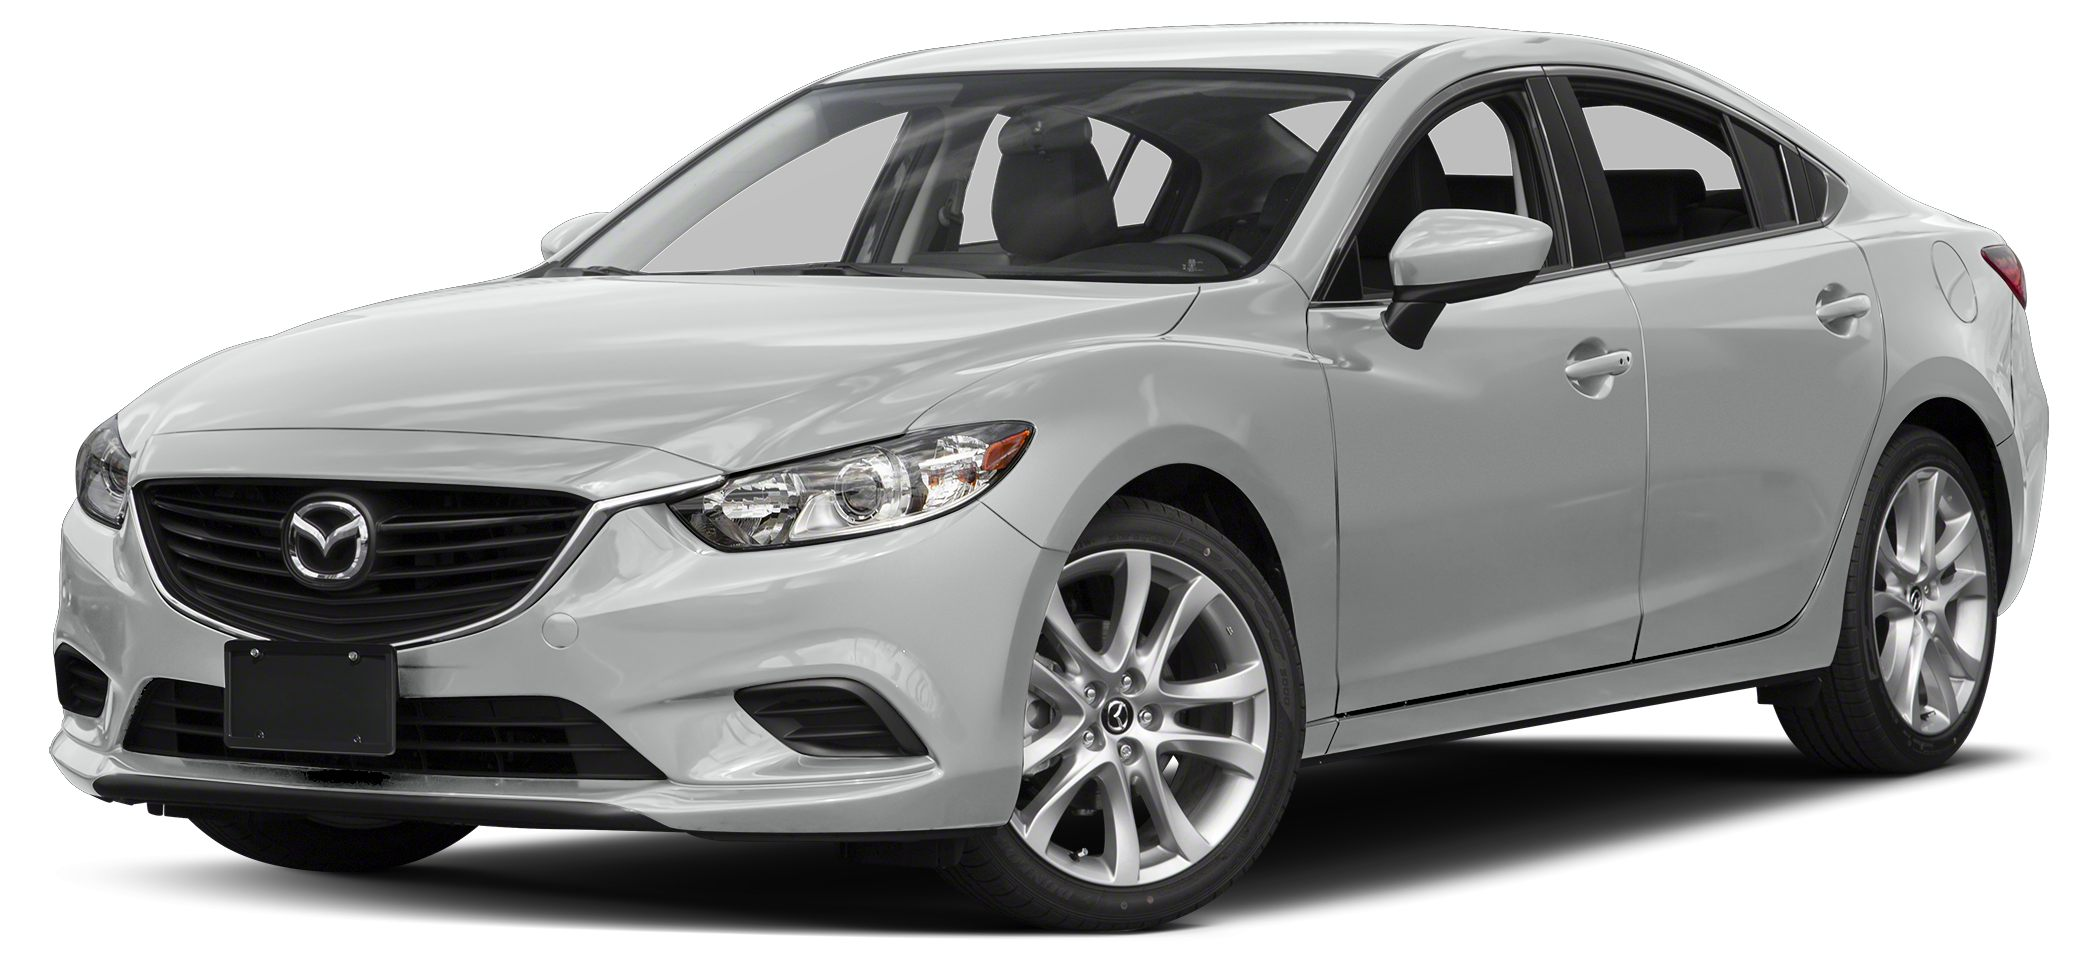 2016 Mazda MAZDA6 i Touring Introducing the 2016 Mazda Mazda6 It comes equipped with all the stan